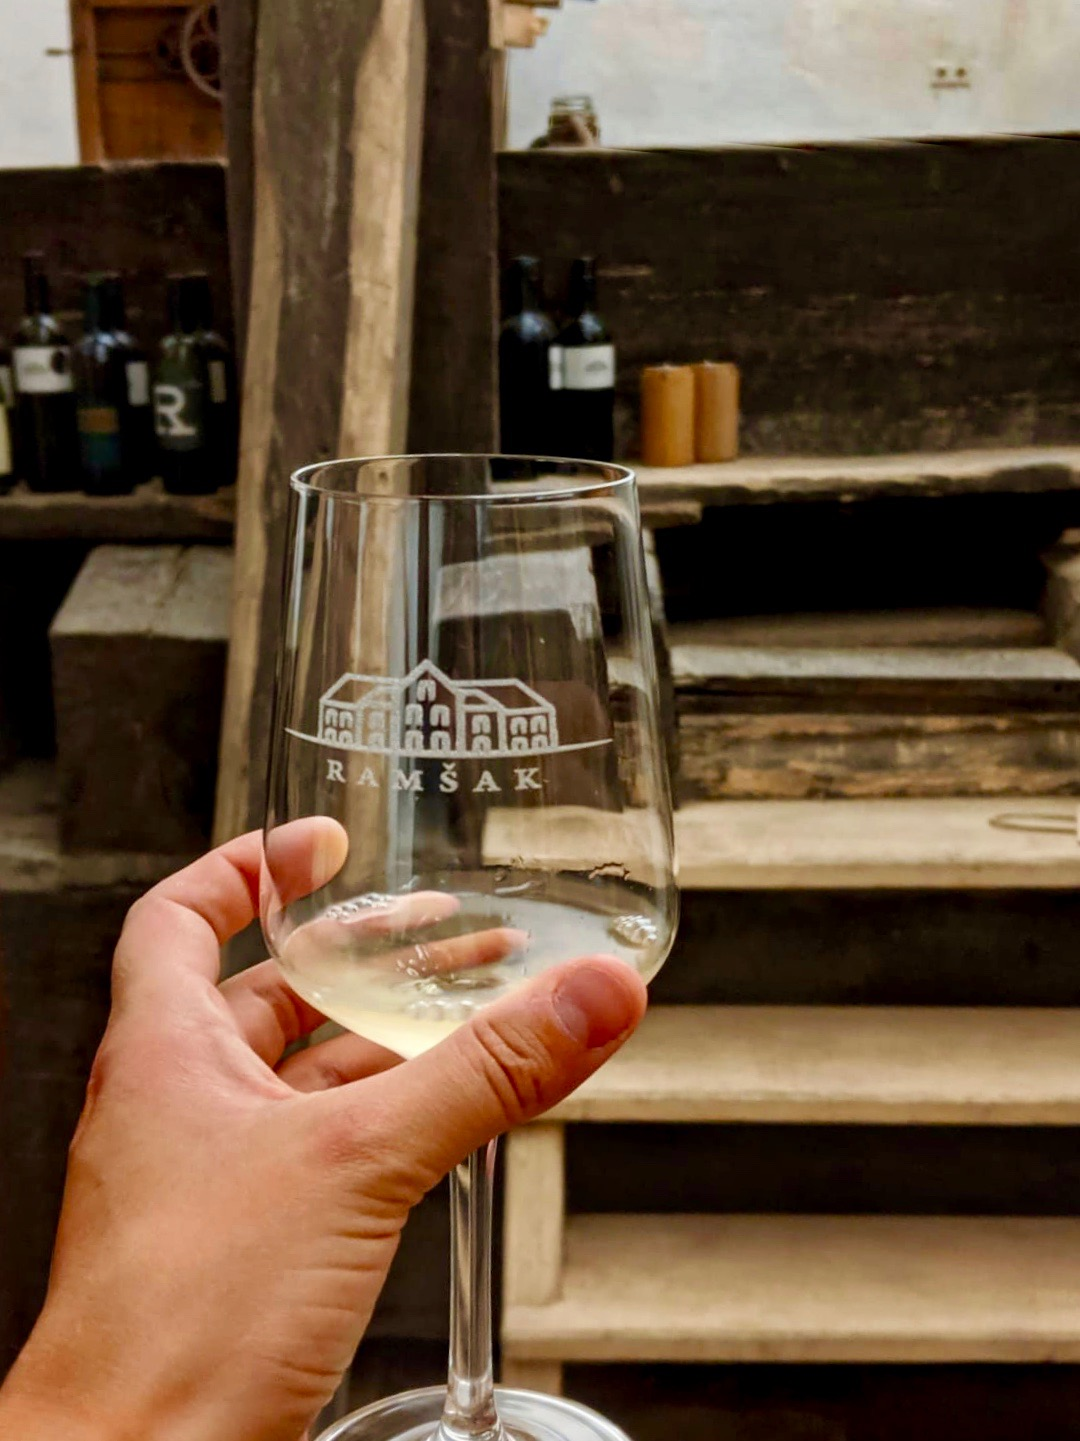 glass of white wine with Chateau Ramsak branding on, taken inside the wine cellar with the largest wine press in Europe in the background